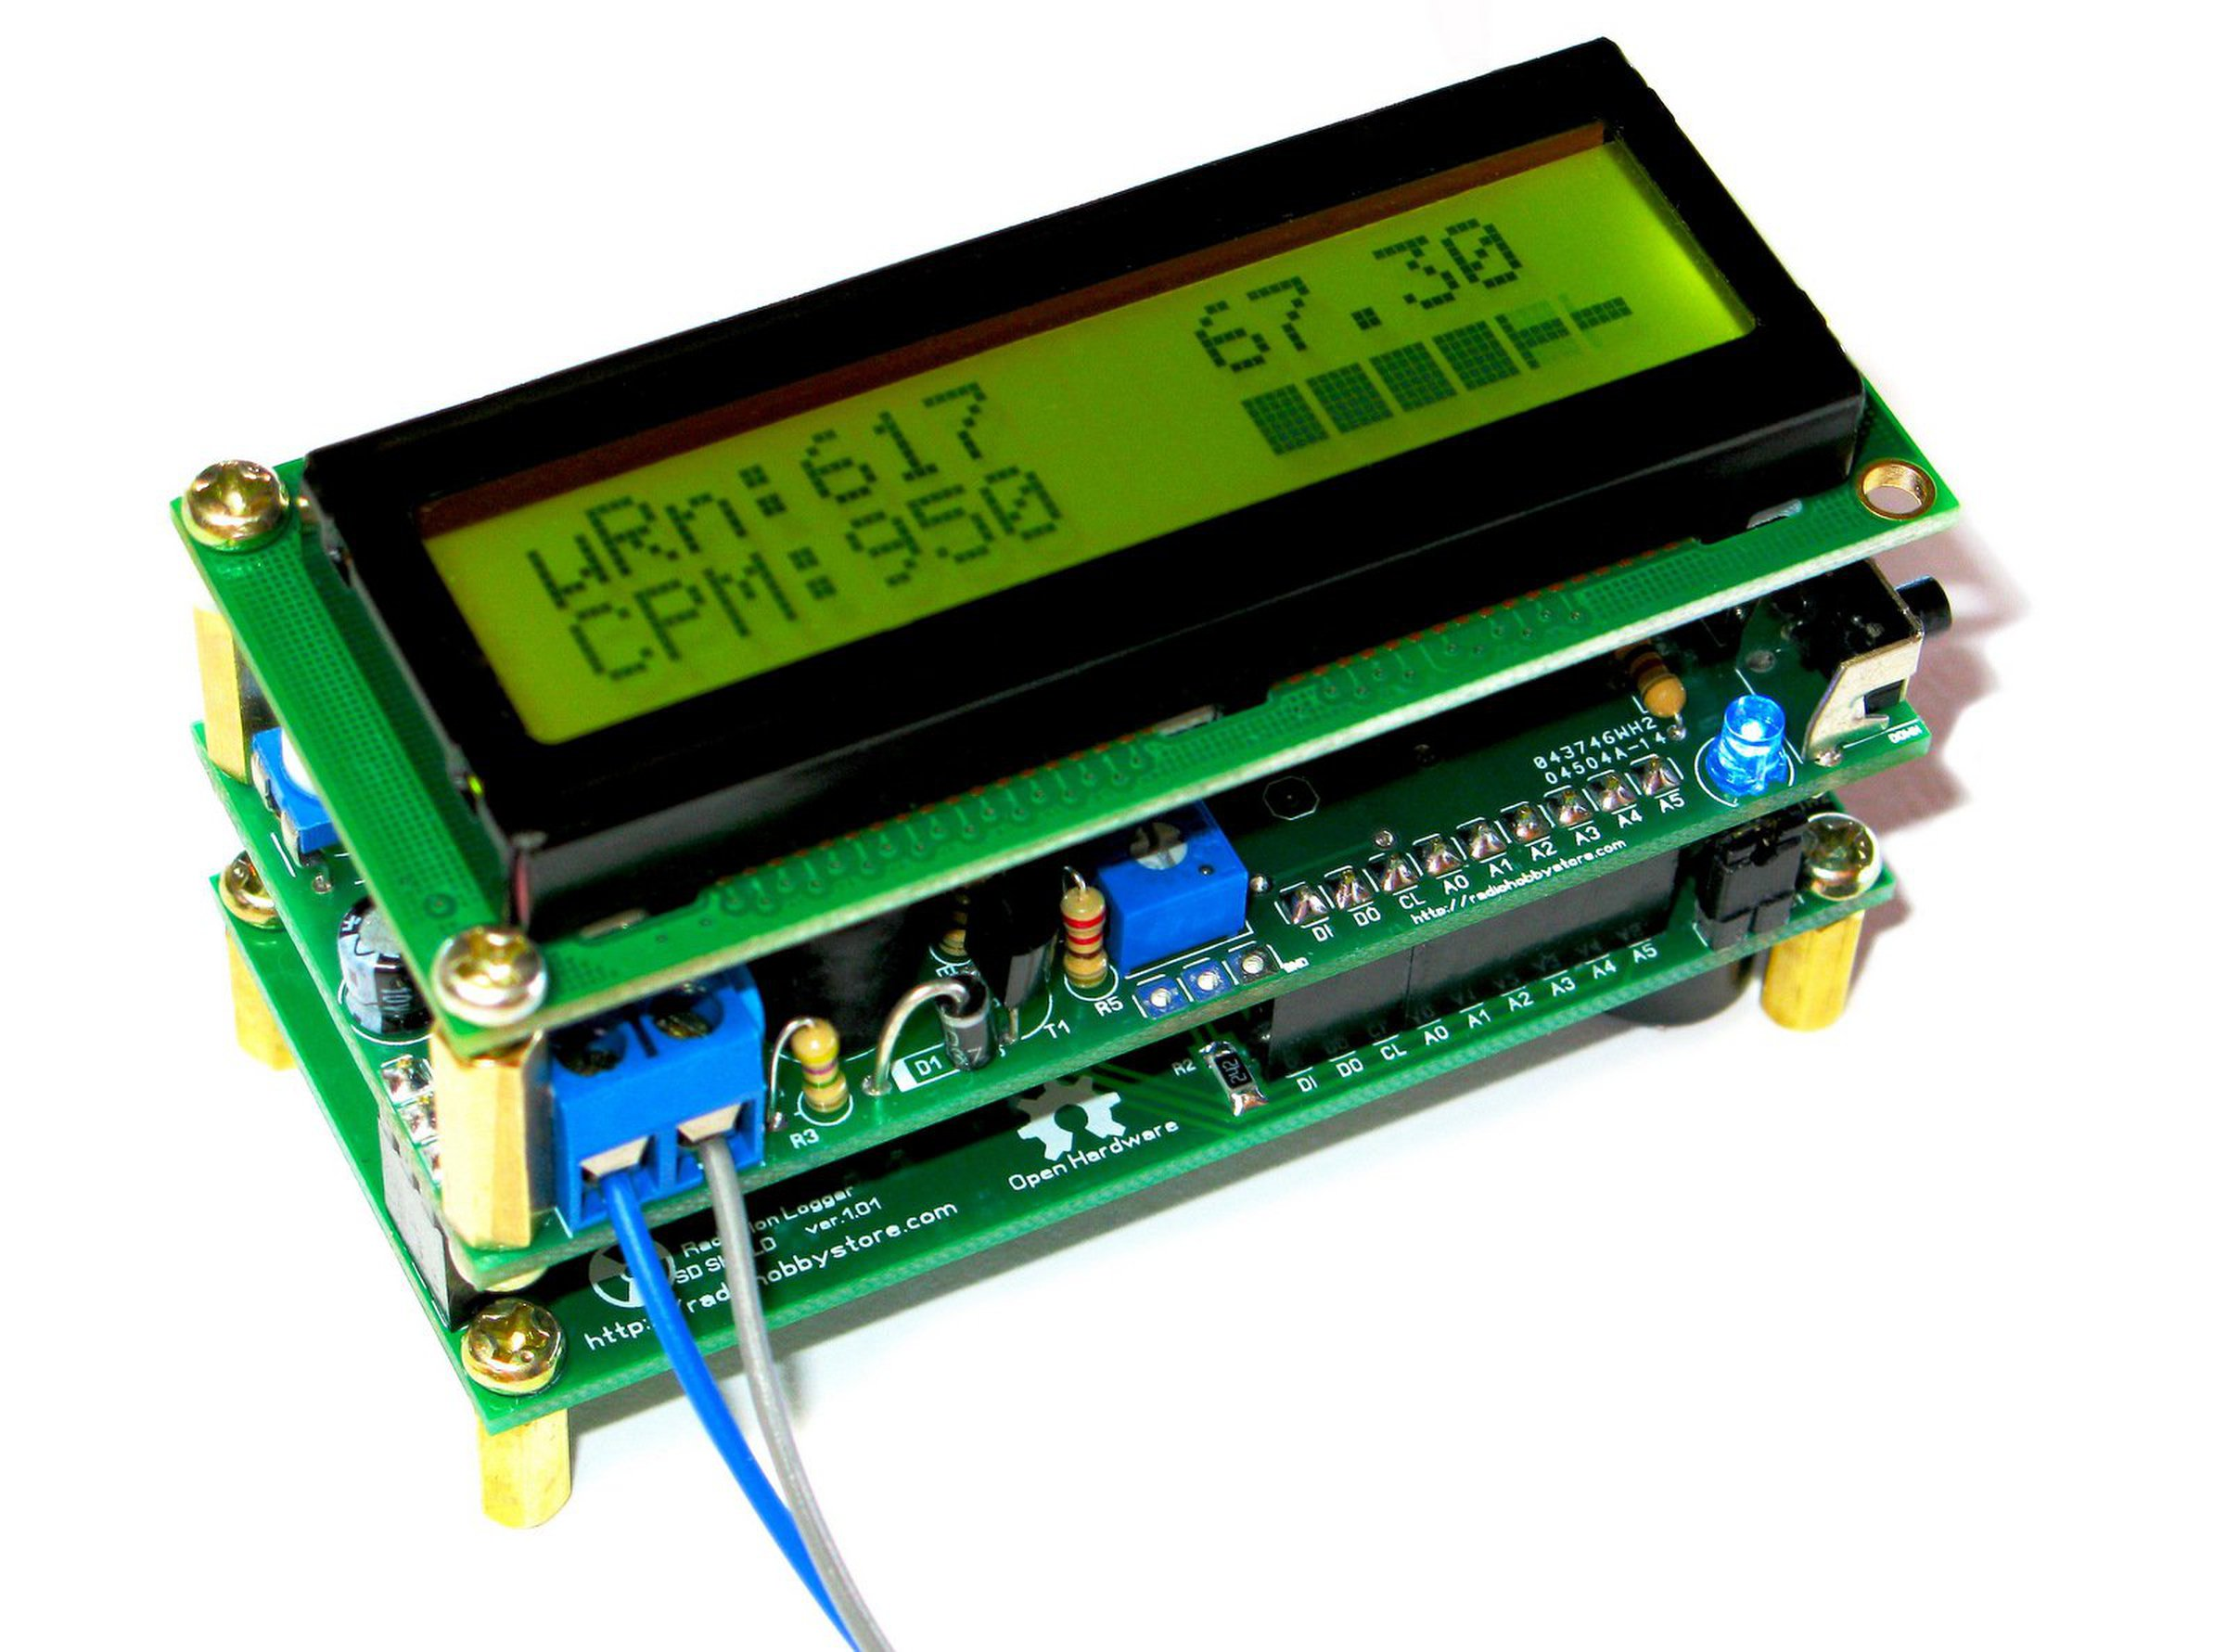 Diy arduino ide geiger counter with sd logger from rh